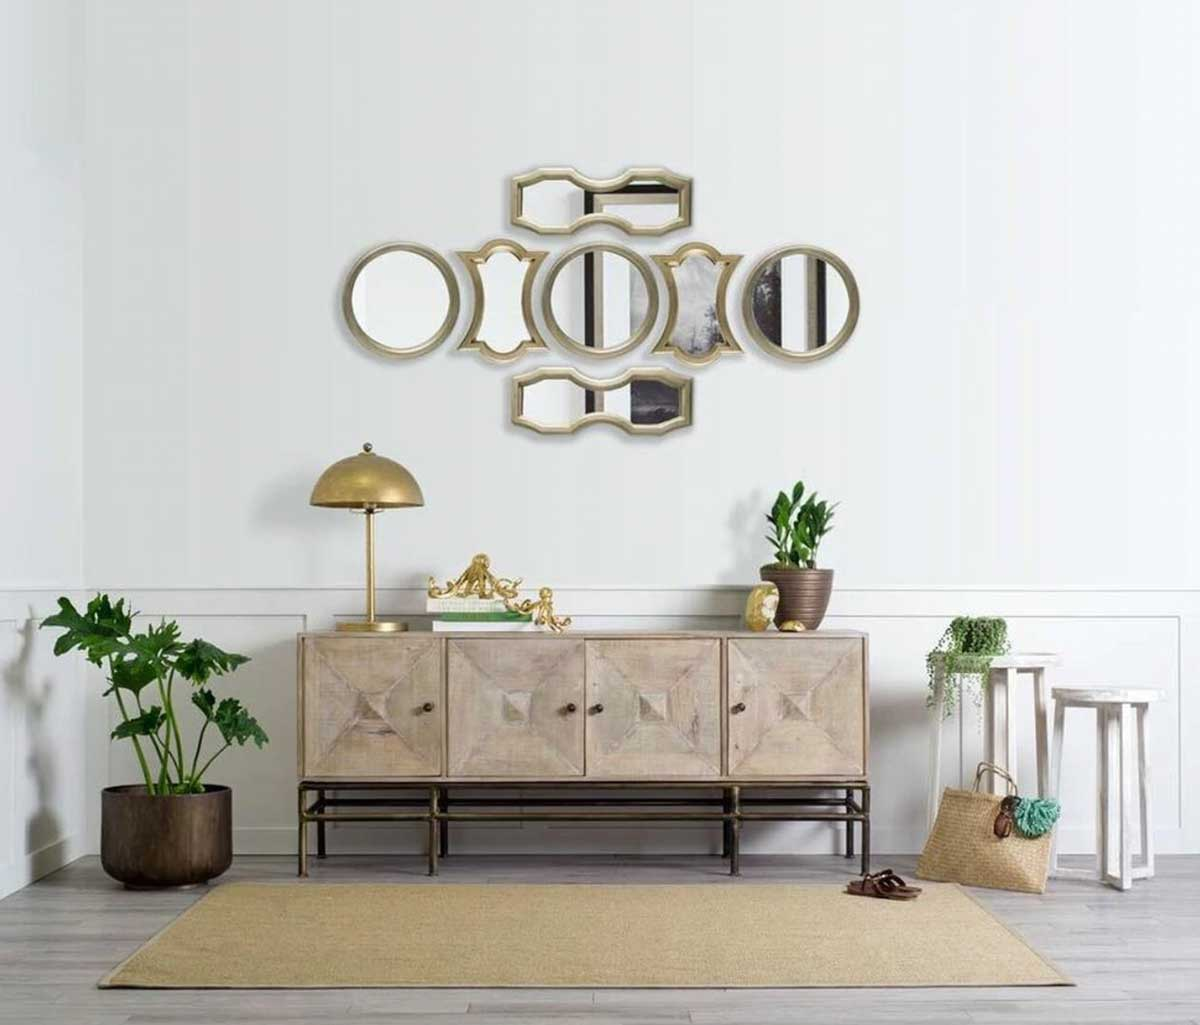 Using Wall Mirrors to Decorate Your Home